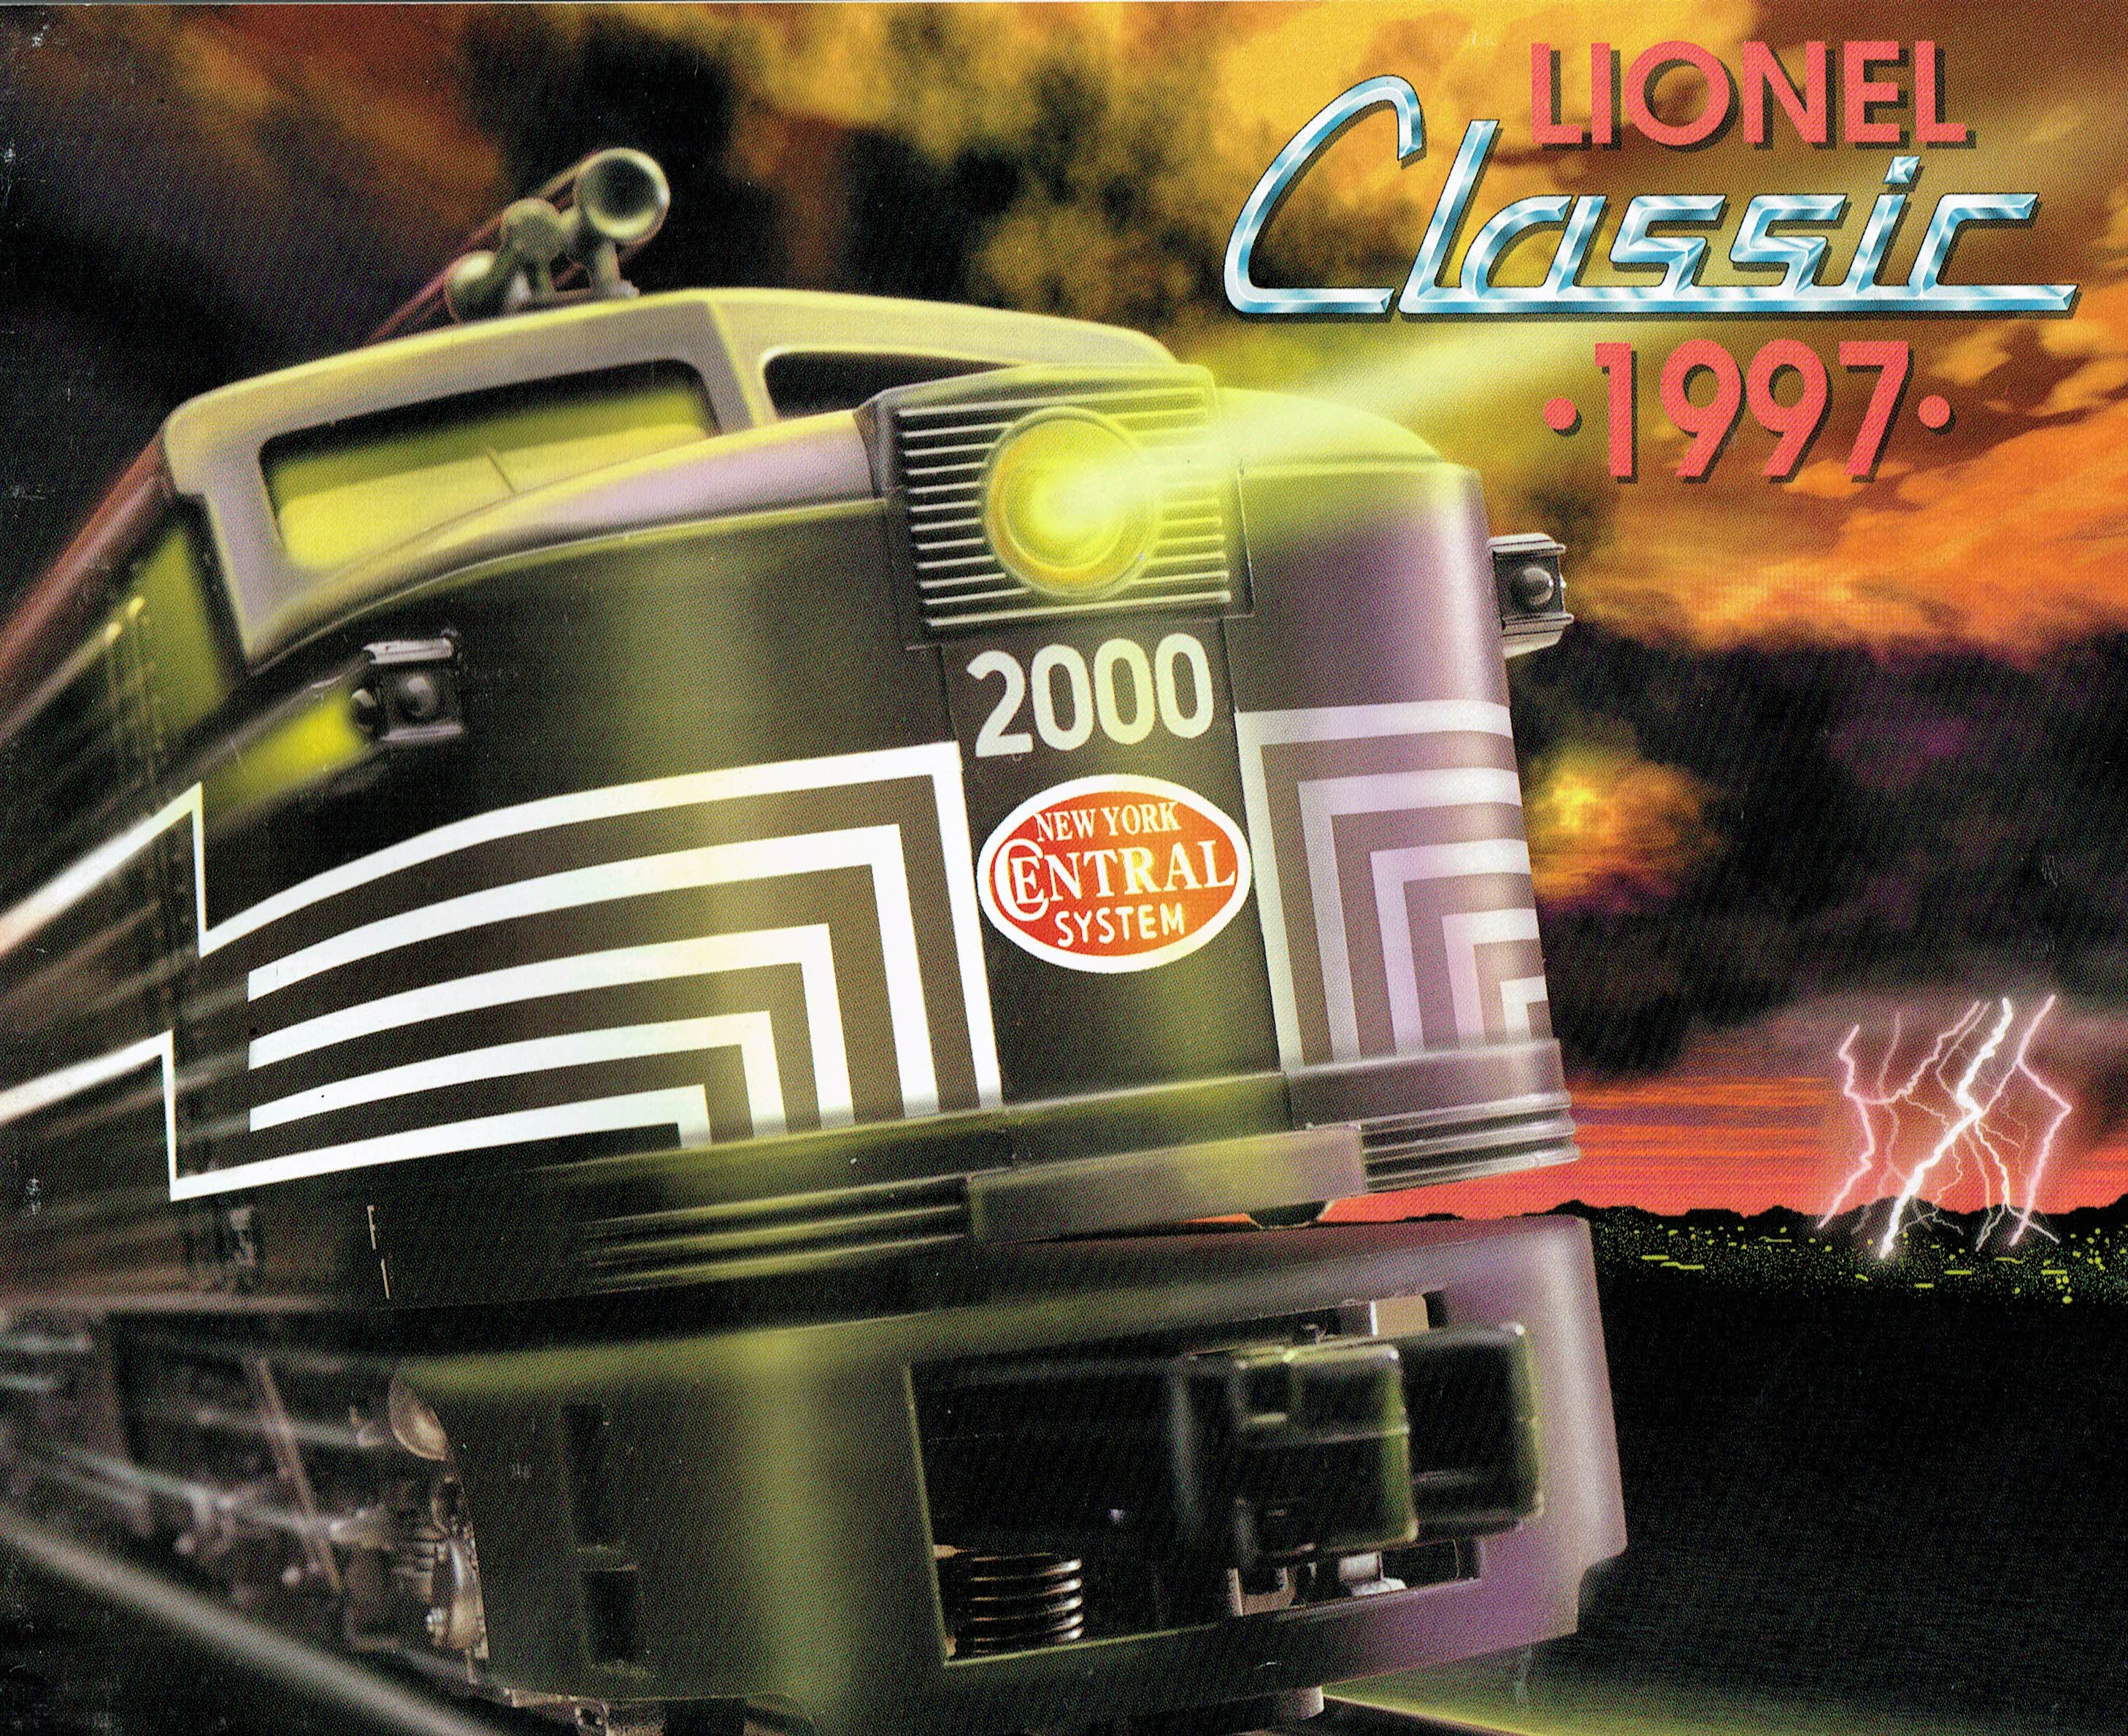 Lionel 1997 Classic (NYC diesel on cover) Catalog image